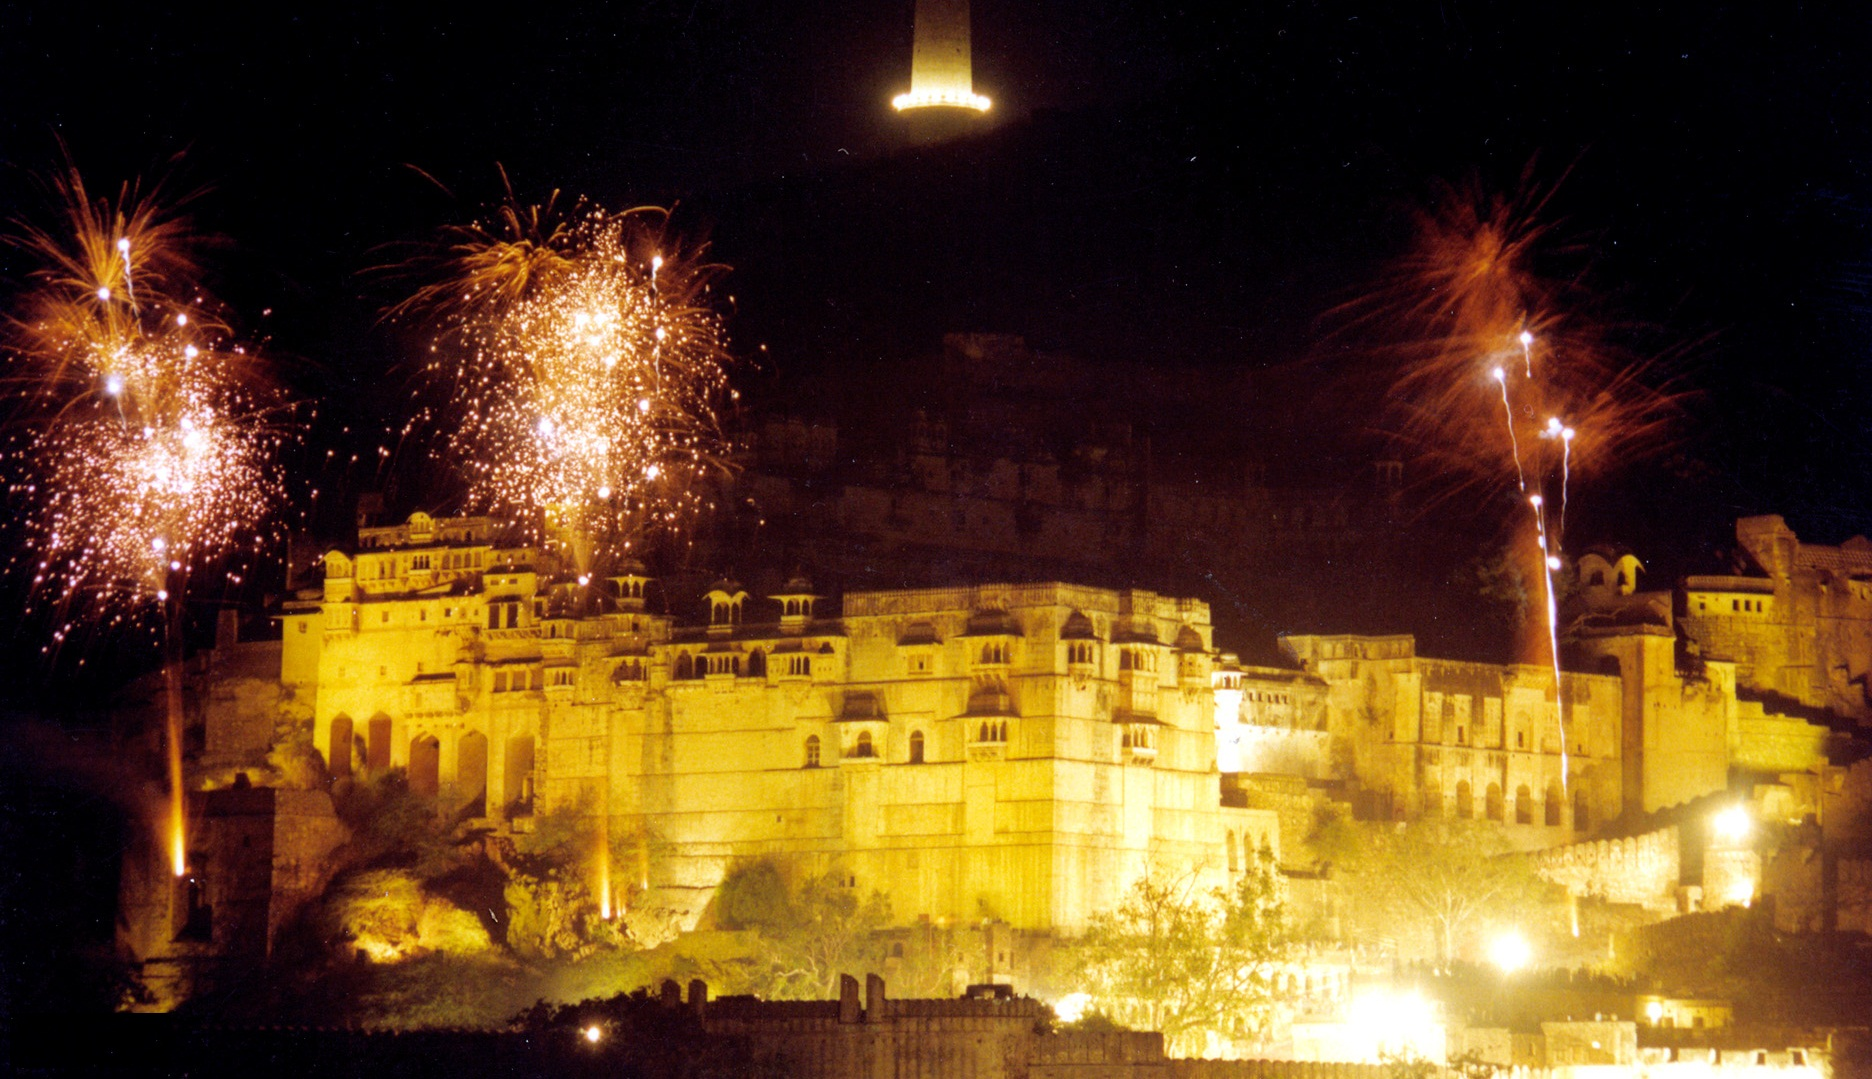 Bundi Utsav - The Cultural Extravaganza of Rajasthan